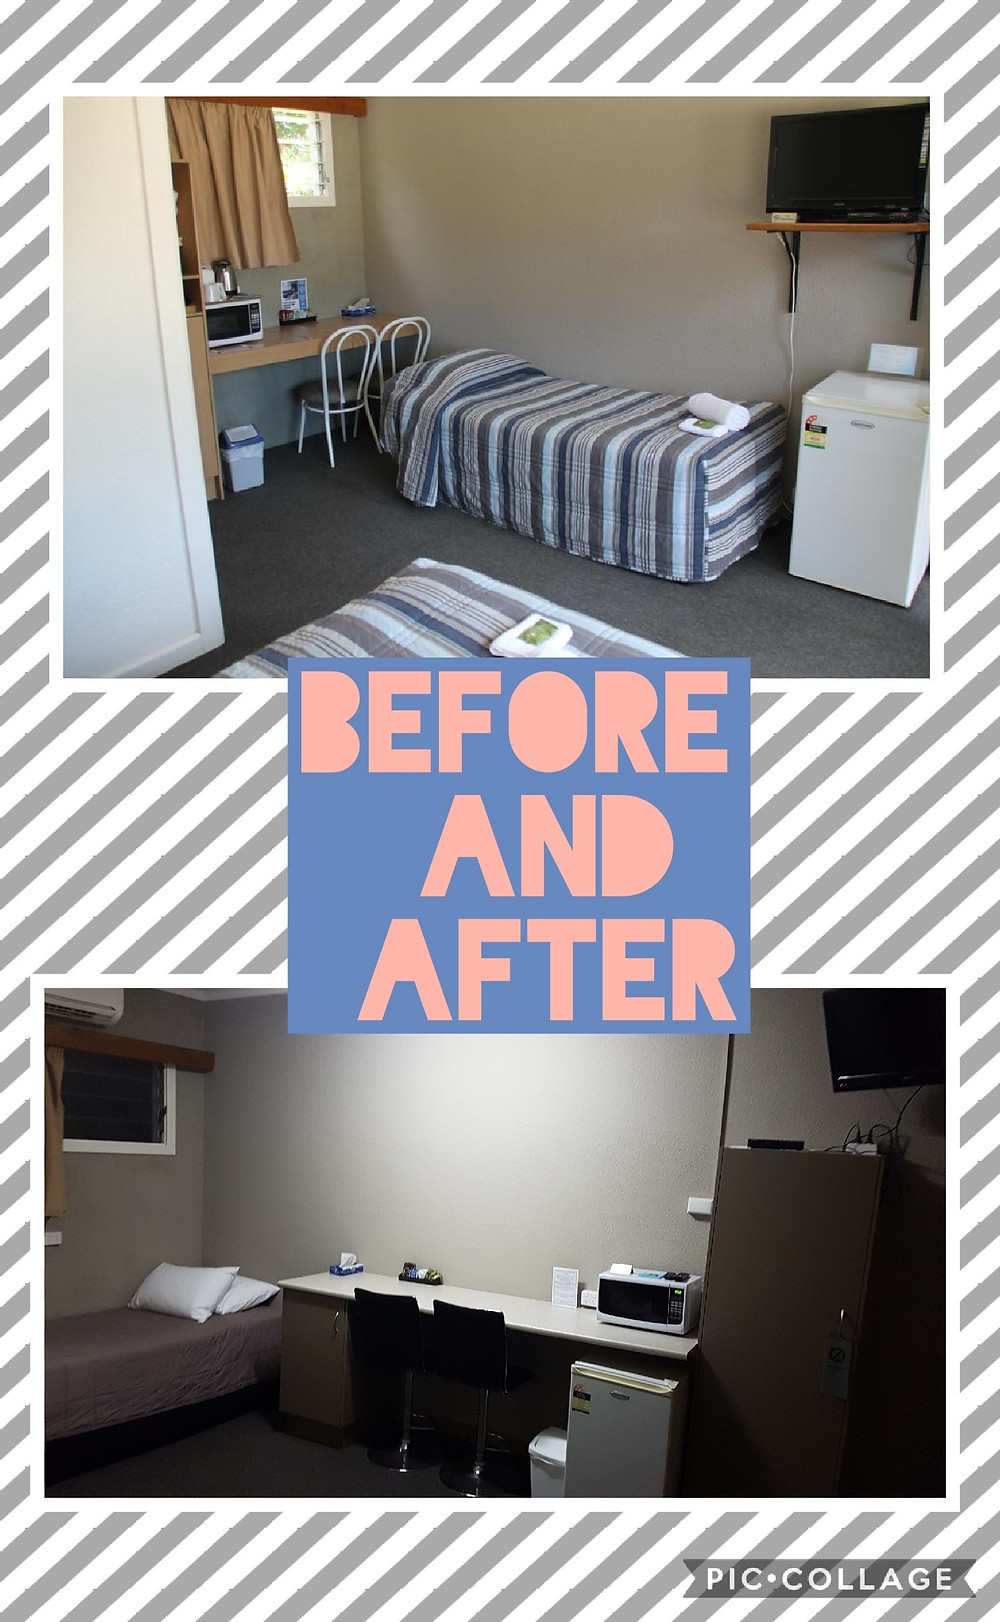 Room refurbishment